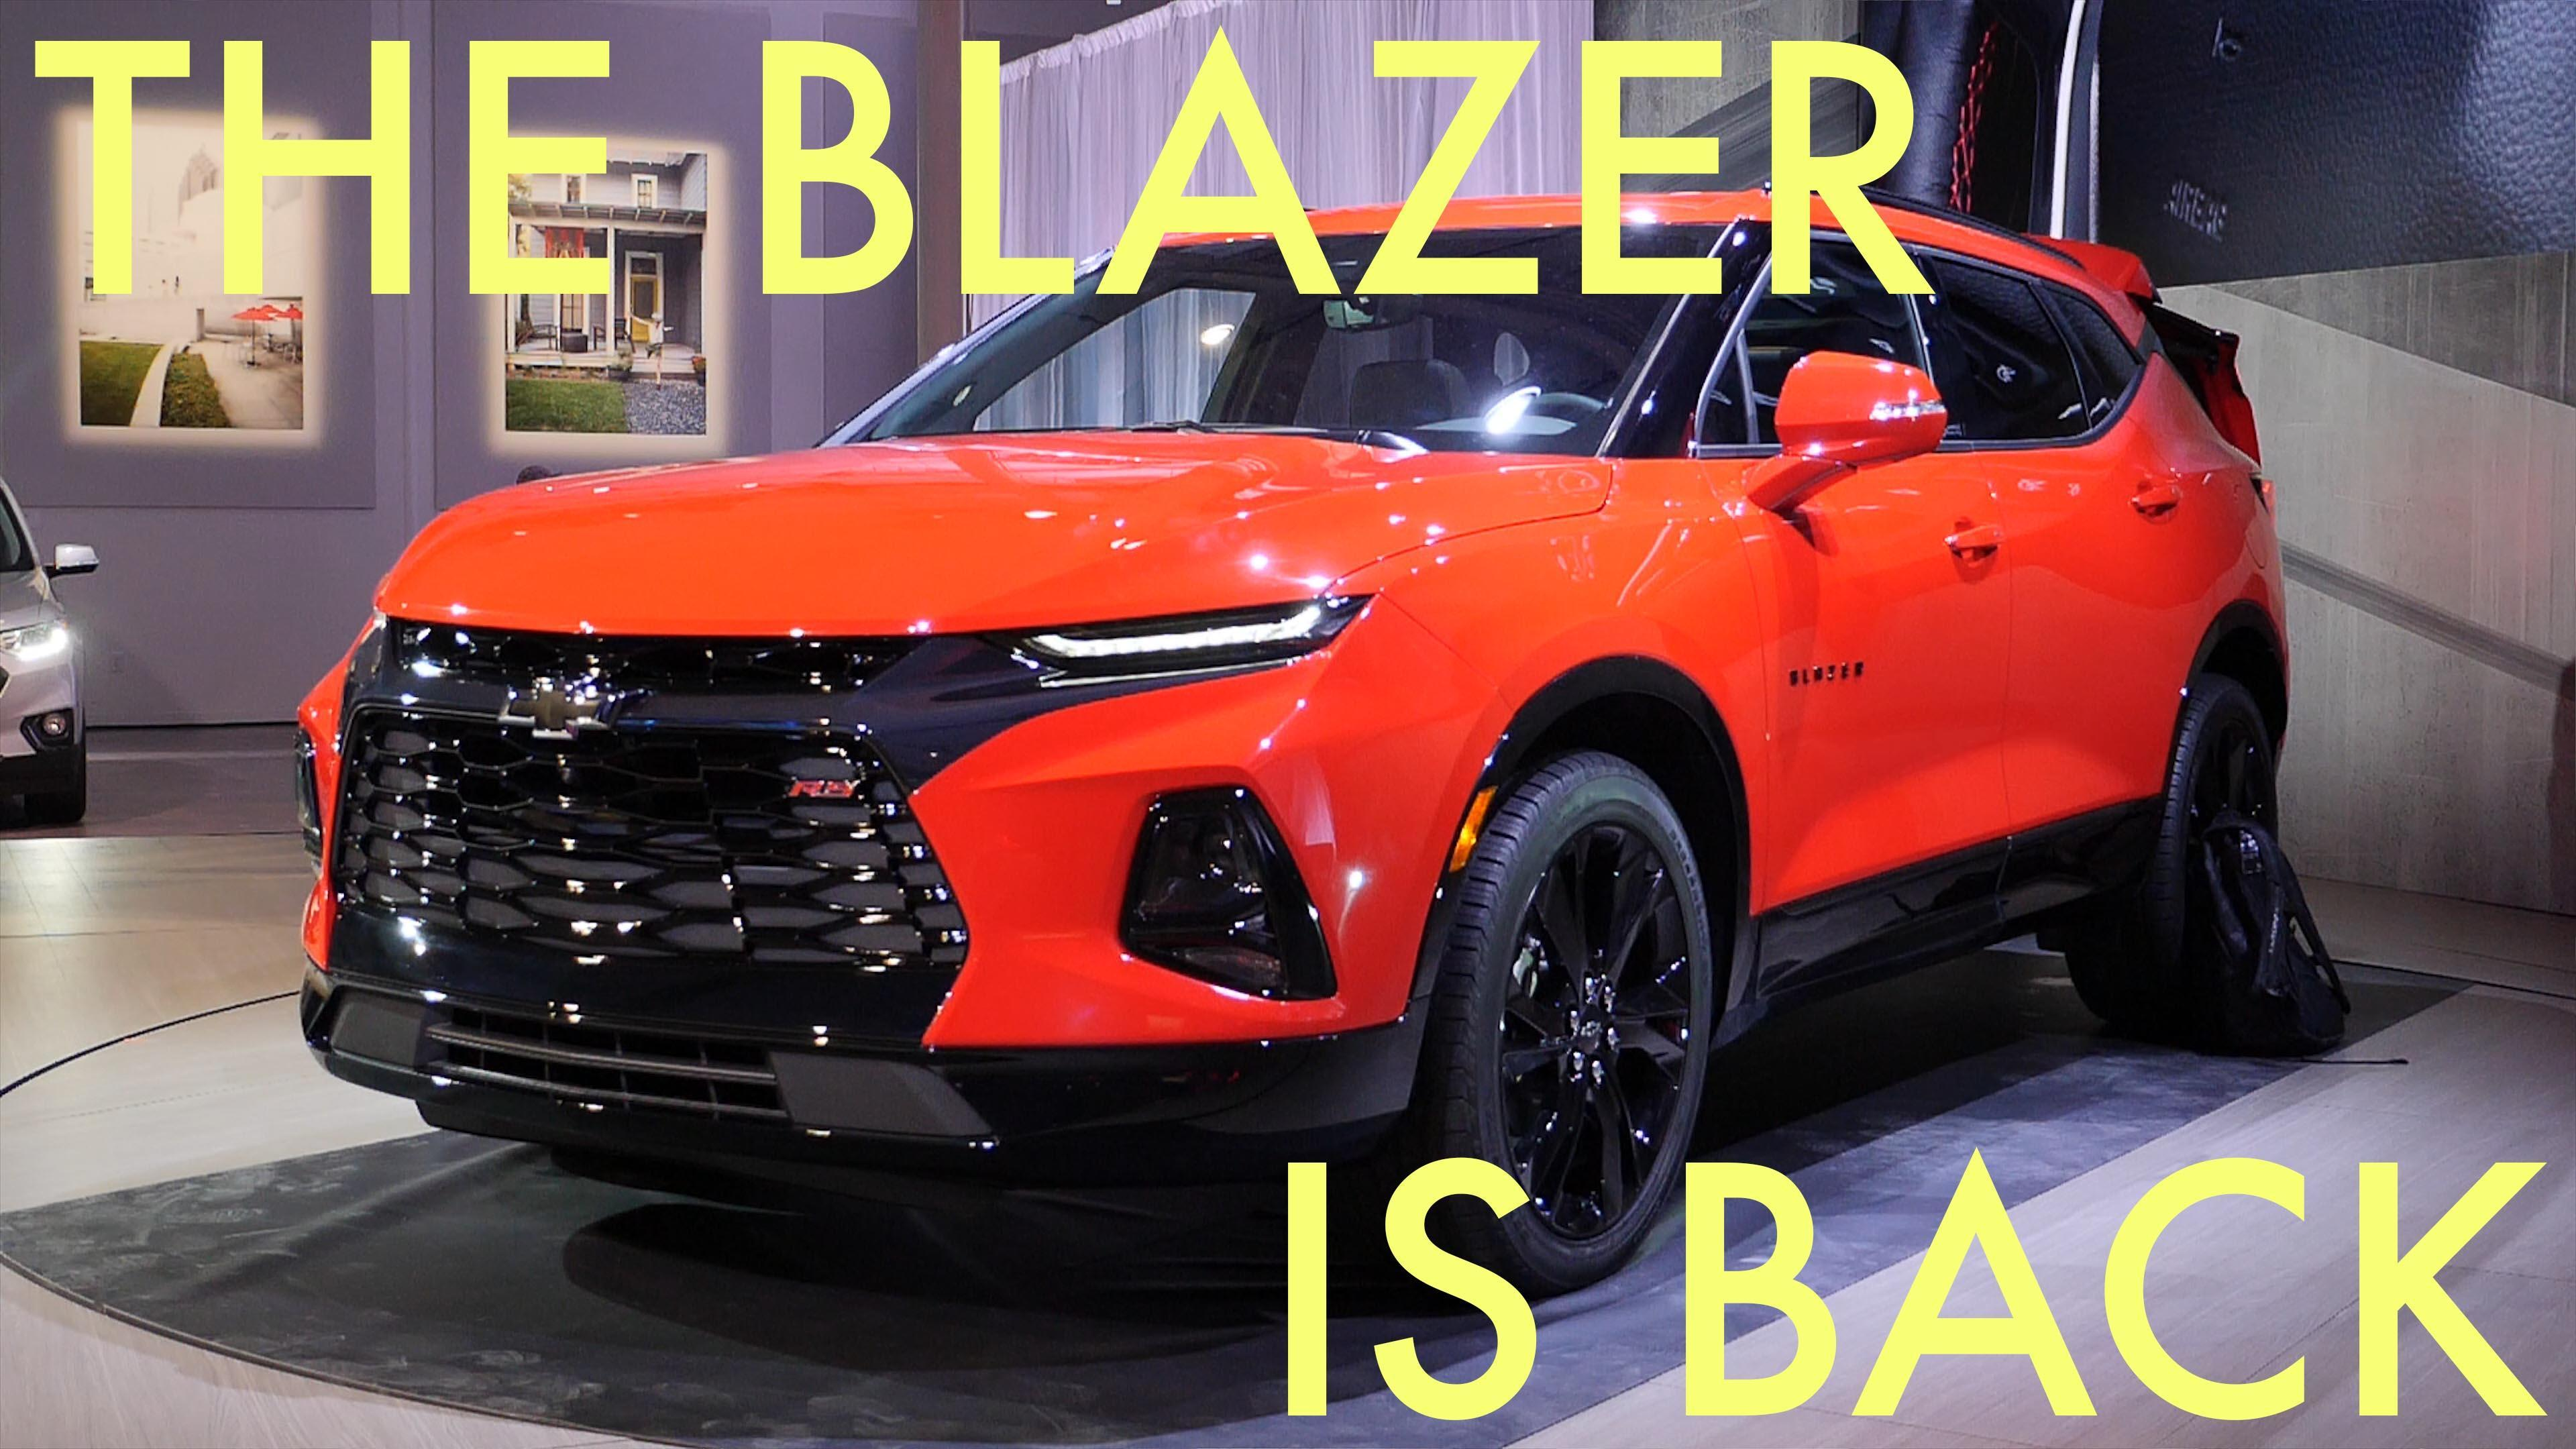 2019 Chevy Blazer lets us recall its poor discontinued sibling, the Oldsmobile Bravada | Autoblog